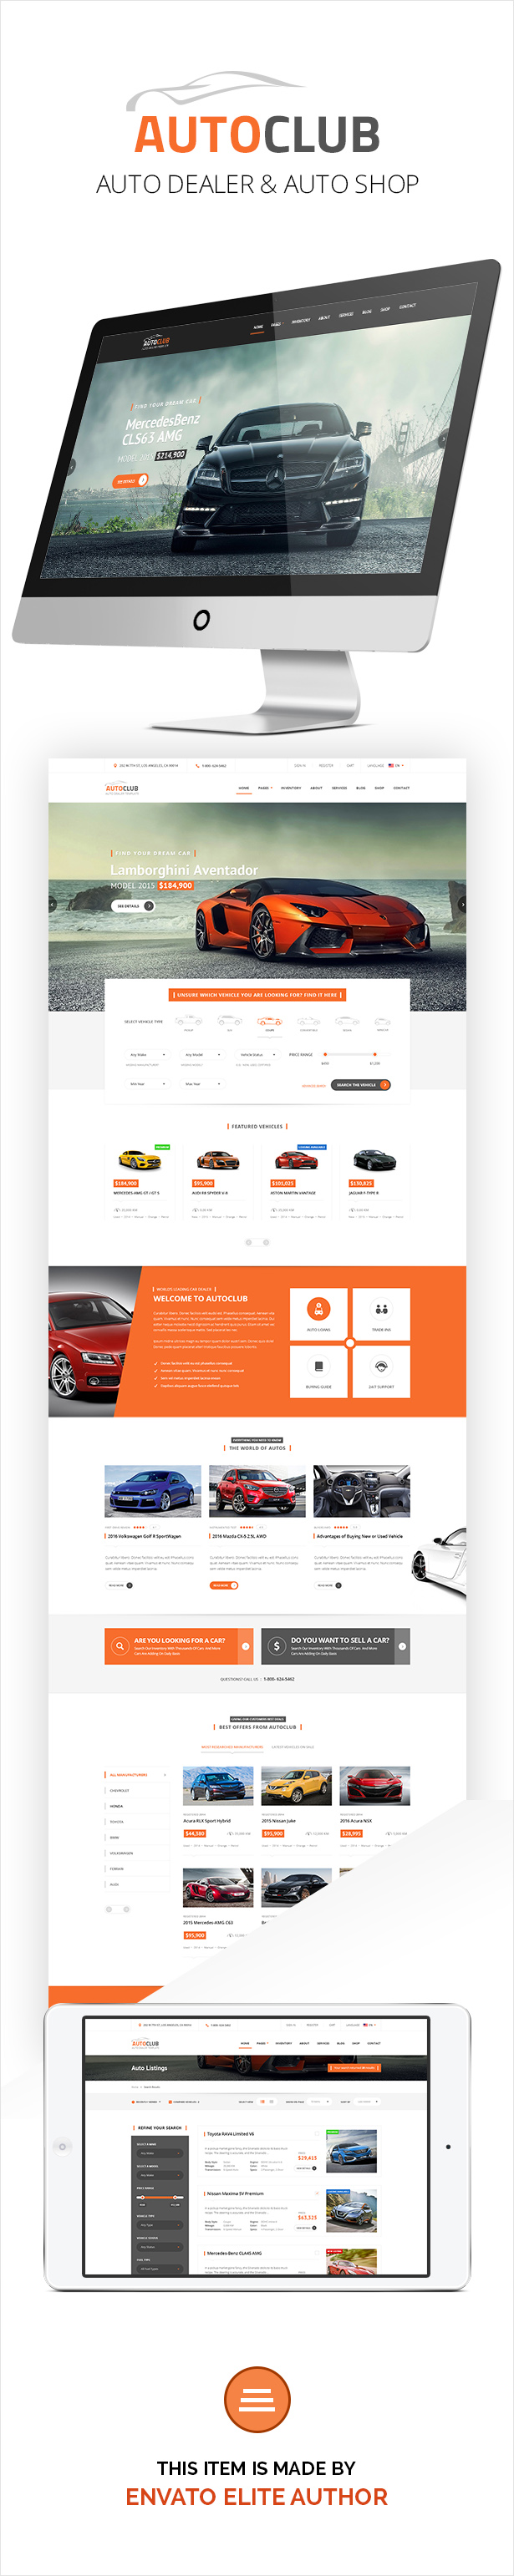 for car dealership websites and business or any corporate websites in this field this html template also provide solutions to buy or sell cars online